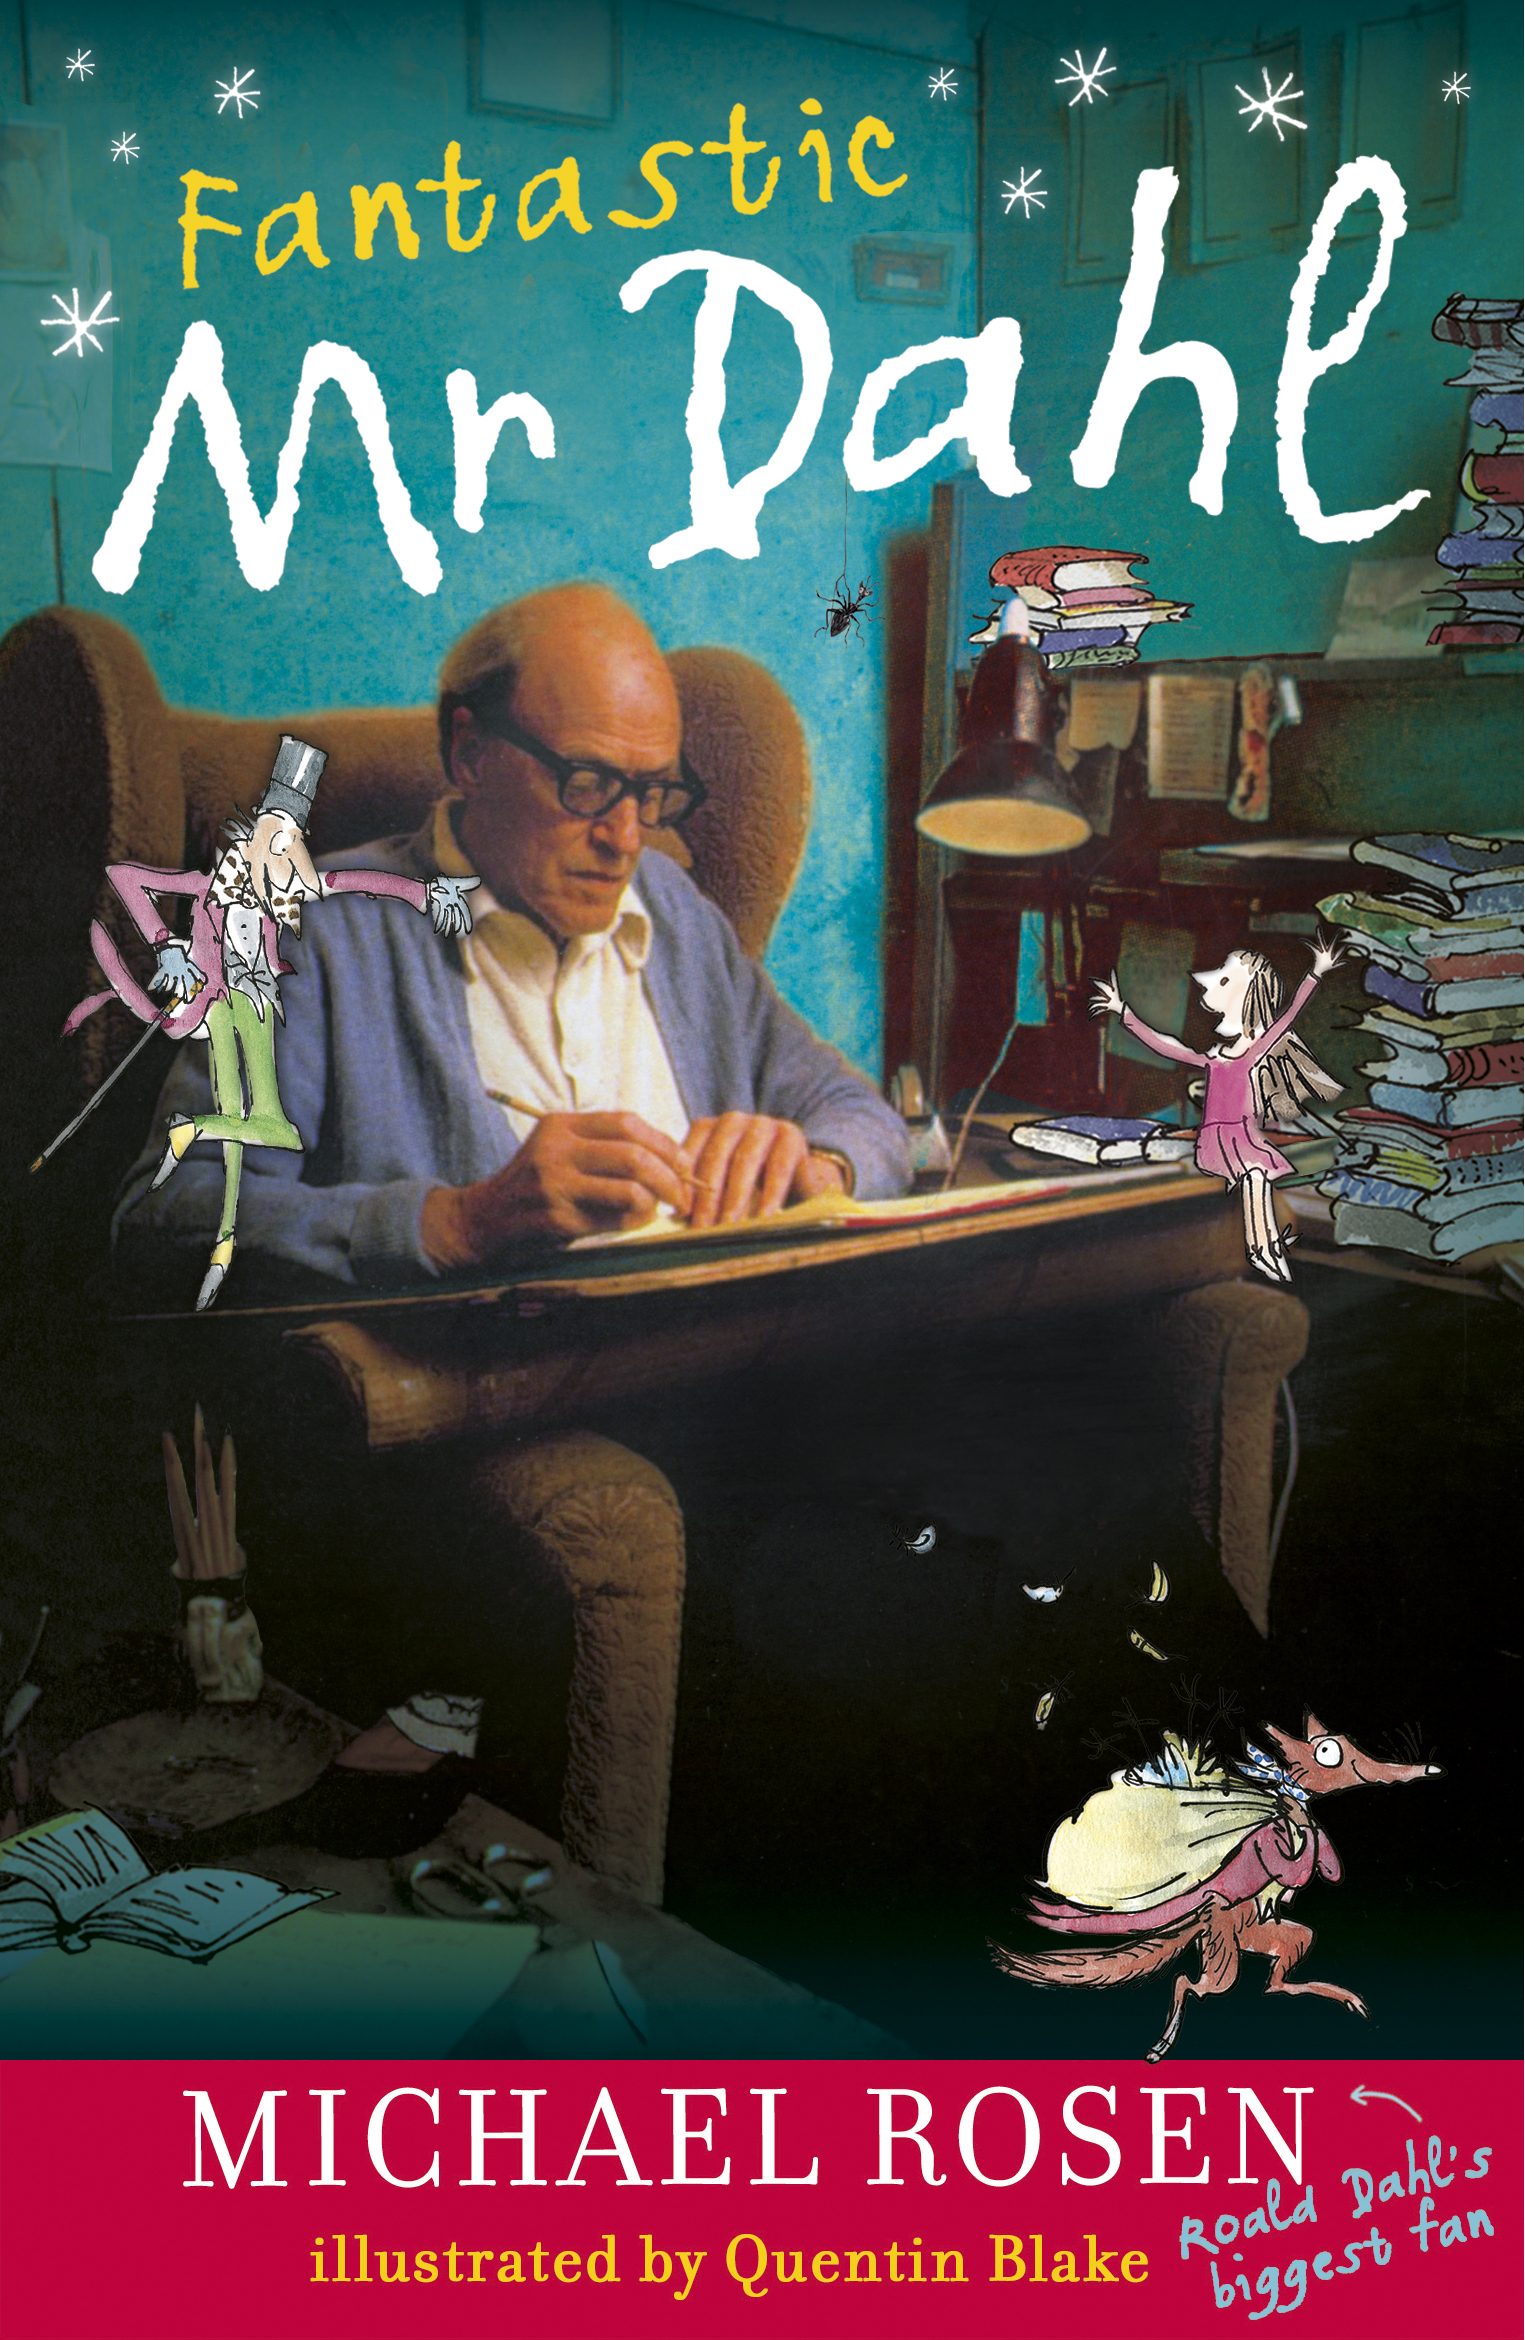 Fantastic Mr. Dahl by Michael Rosen, ISBN: 9780141322131